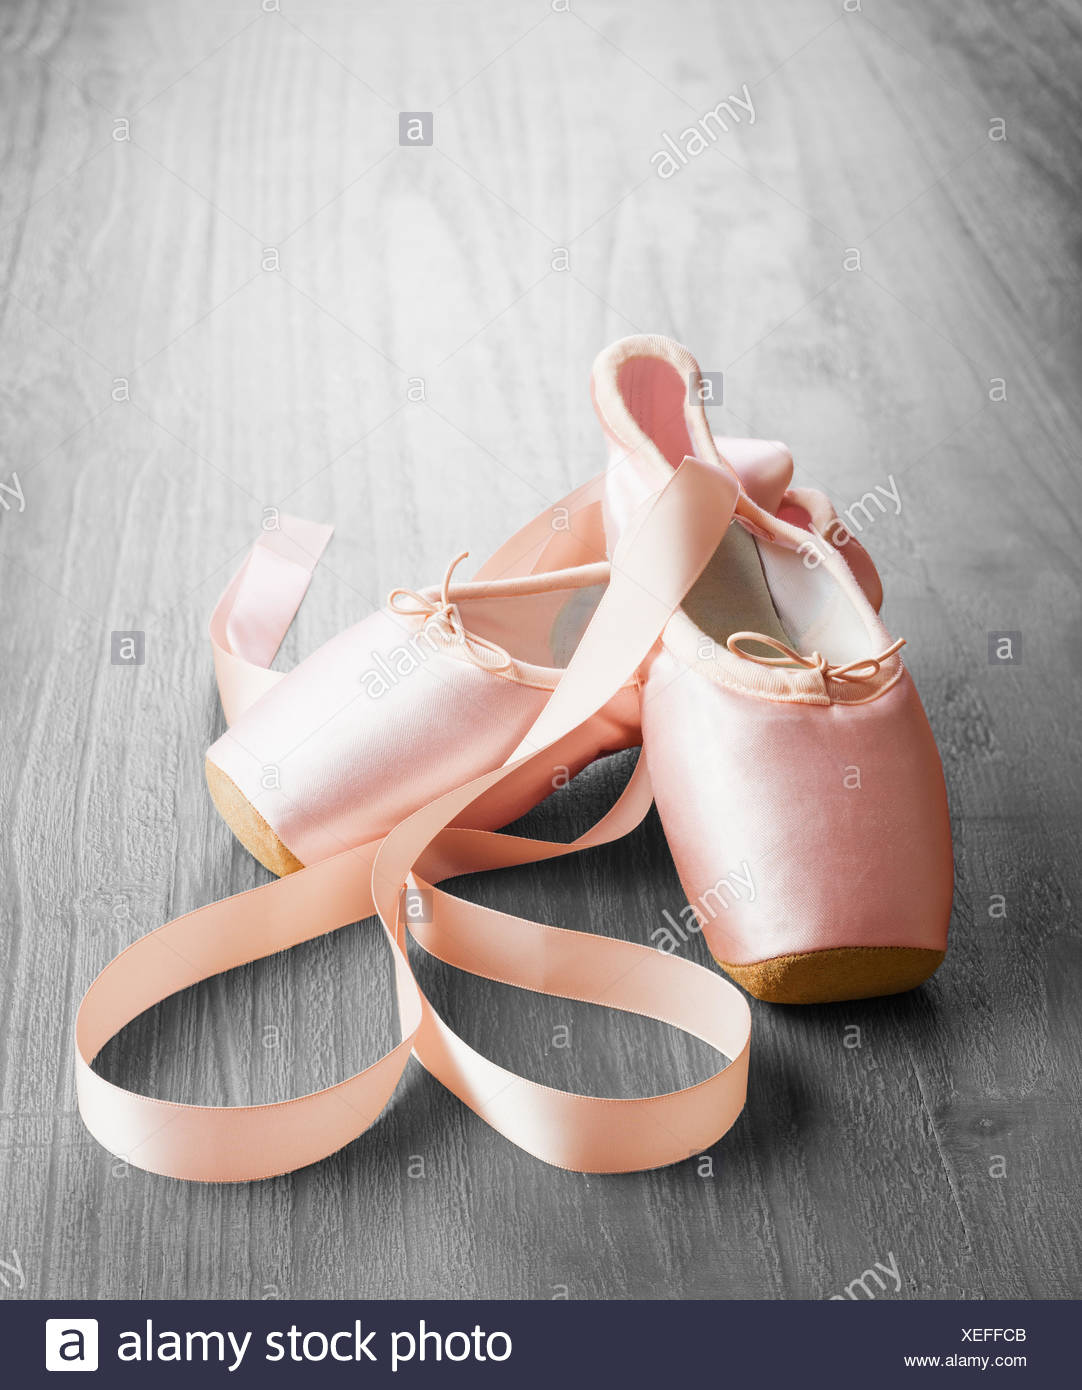 new pink ballet pointe shoes - Stock Image